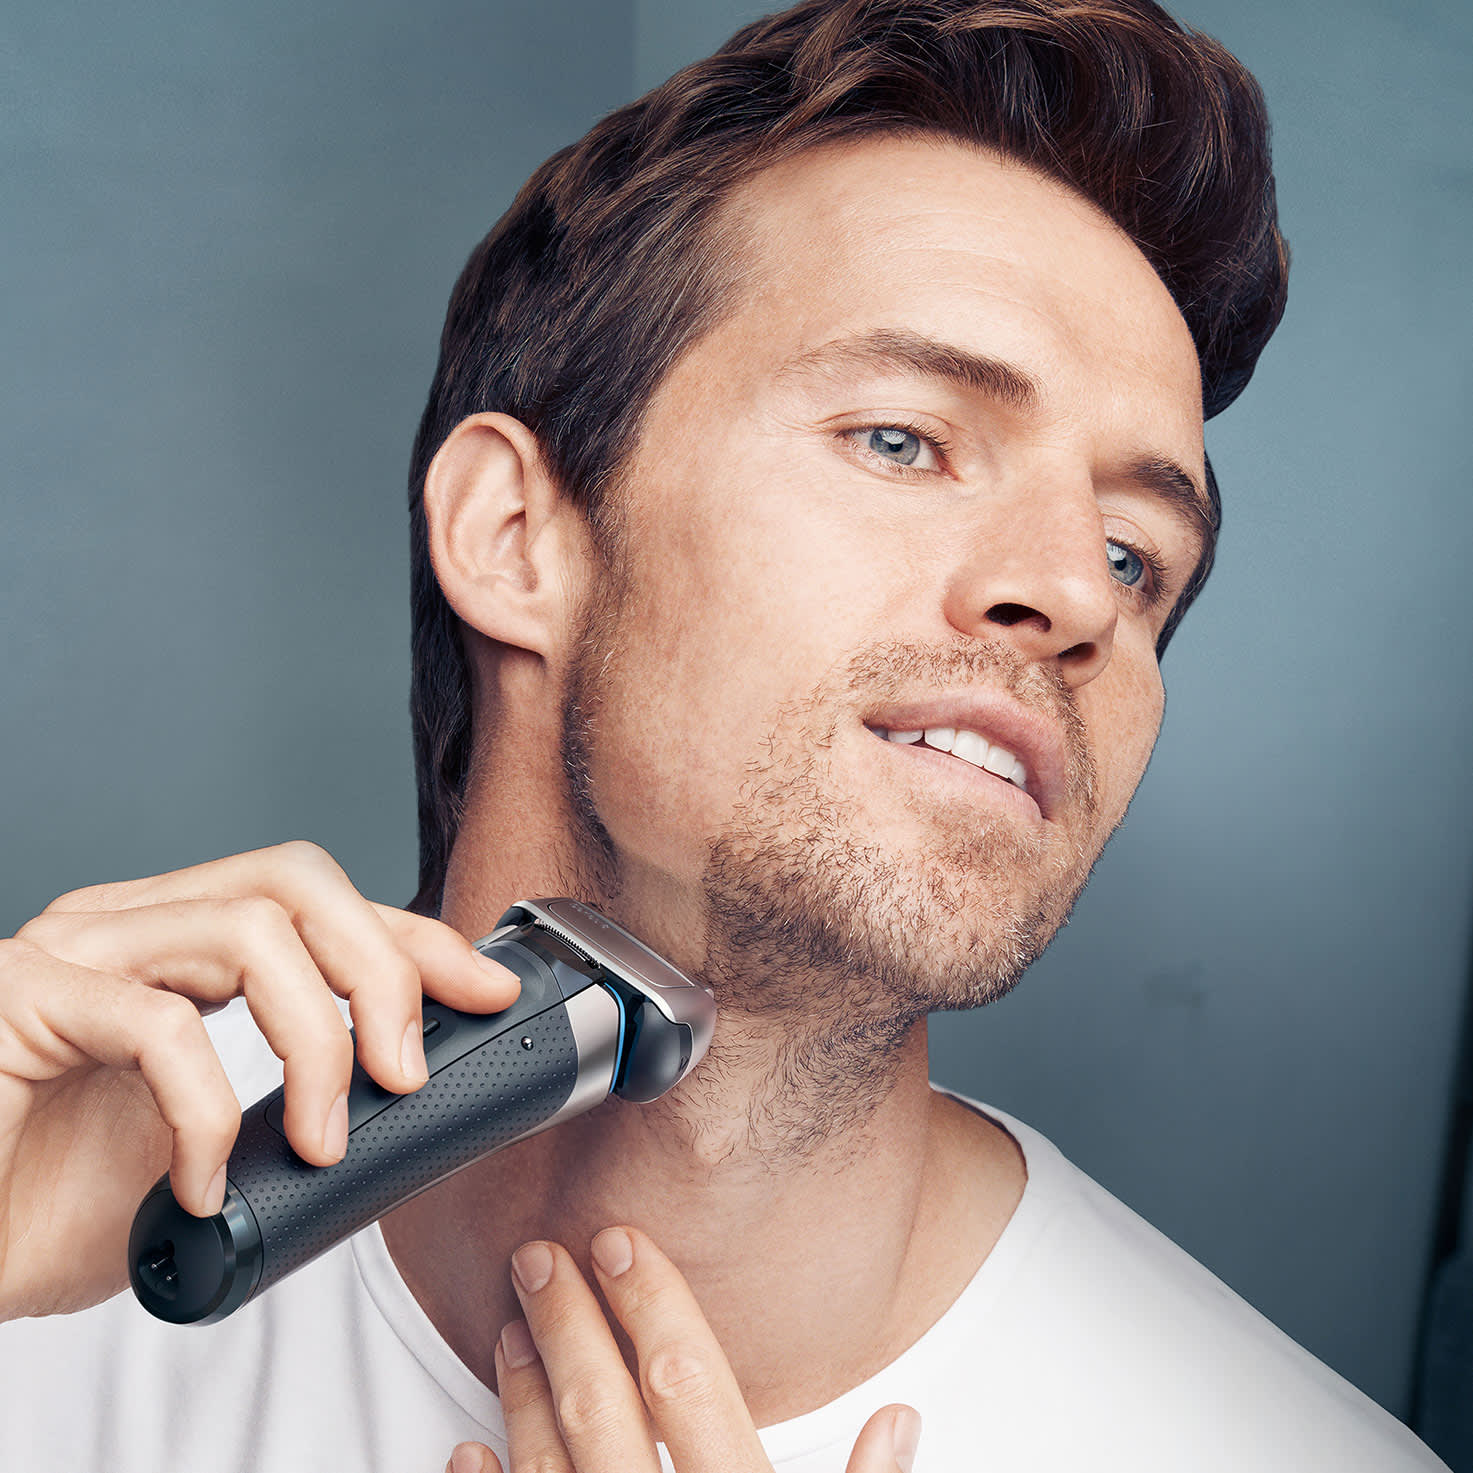 Series 8 8370cc shaver - in use